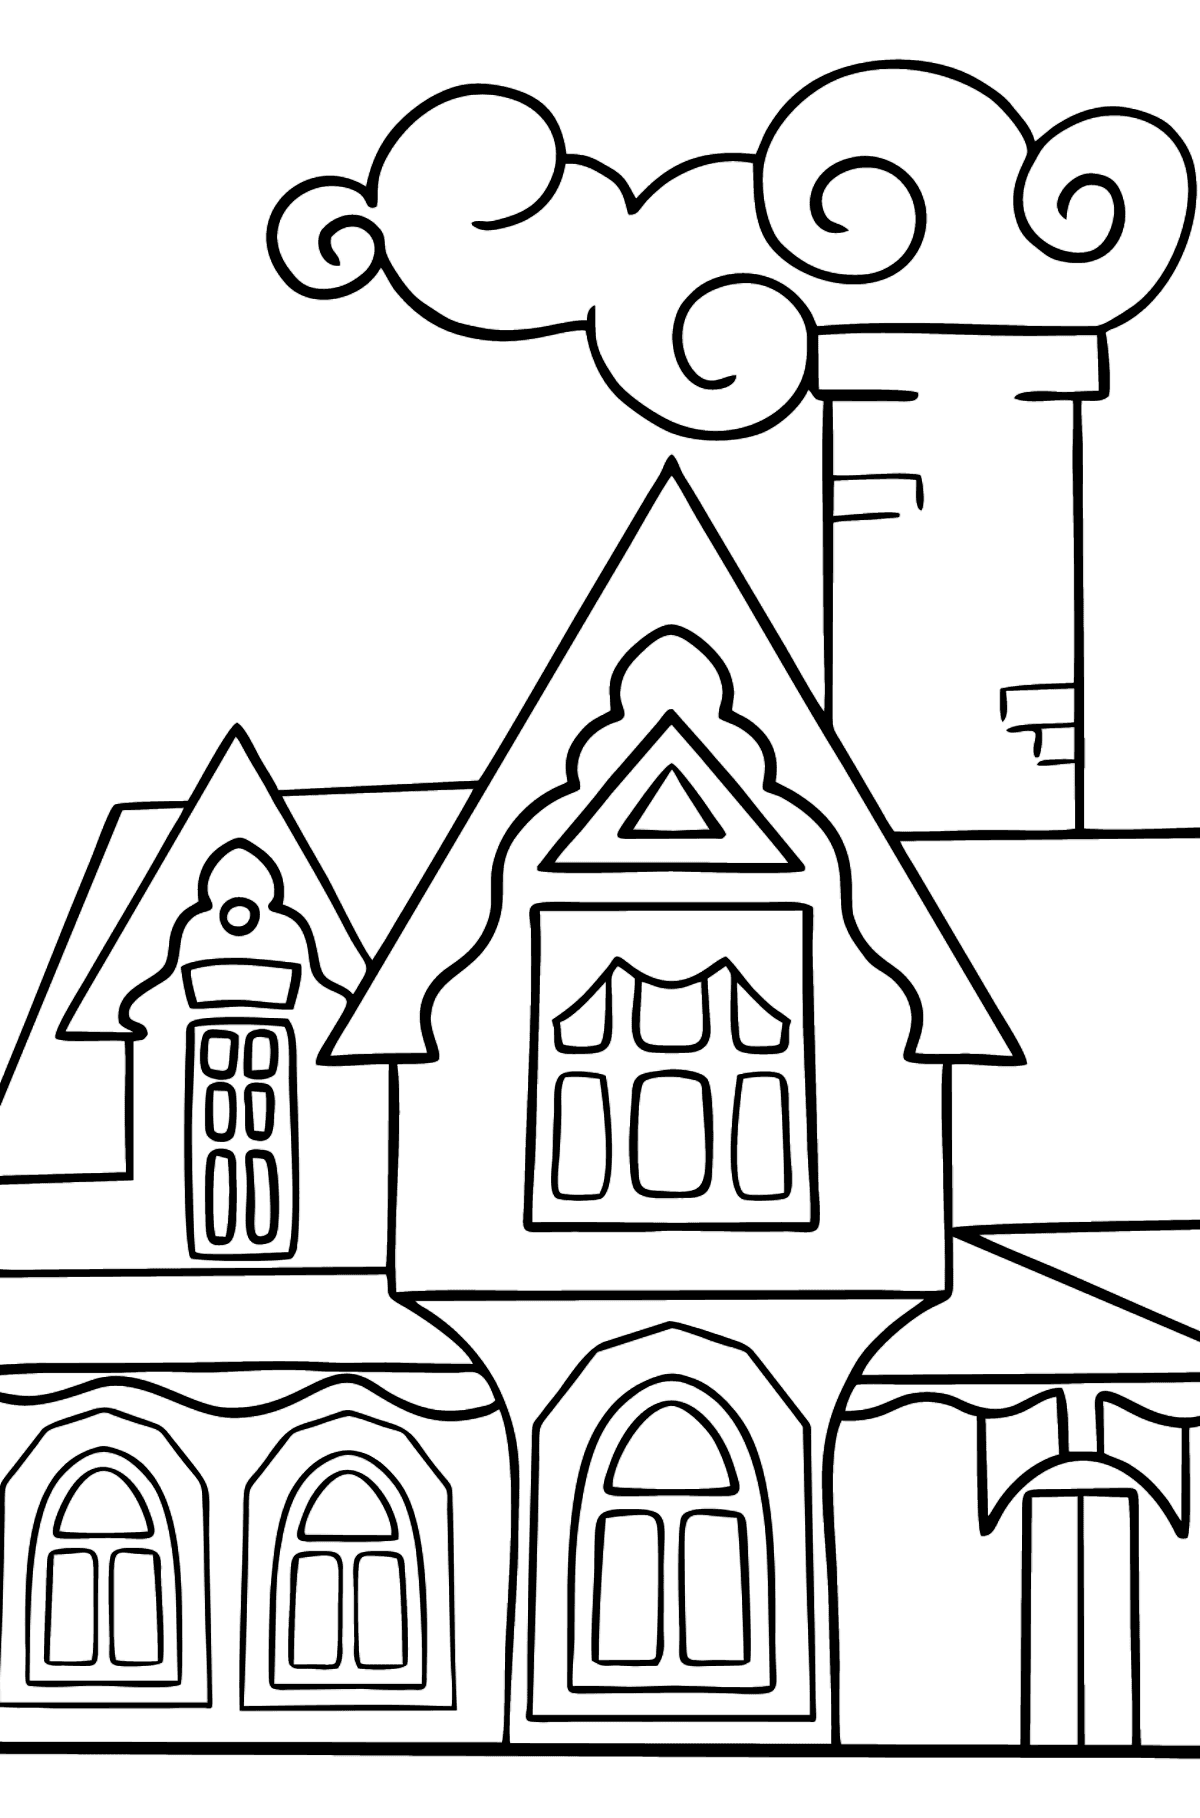 Complex Coloring Page - A Miraculous House - Coloring Pages for Kids